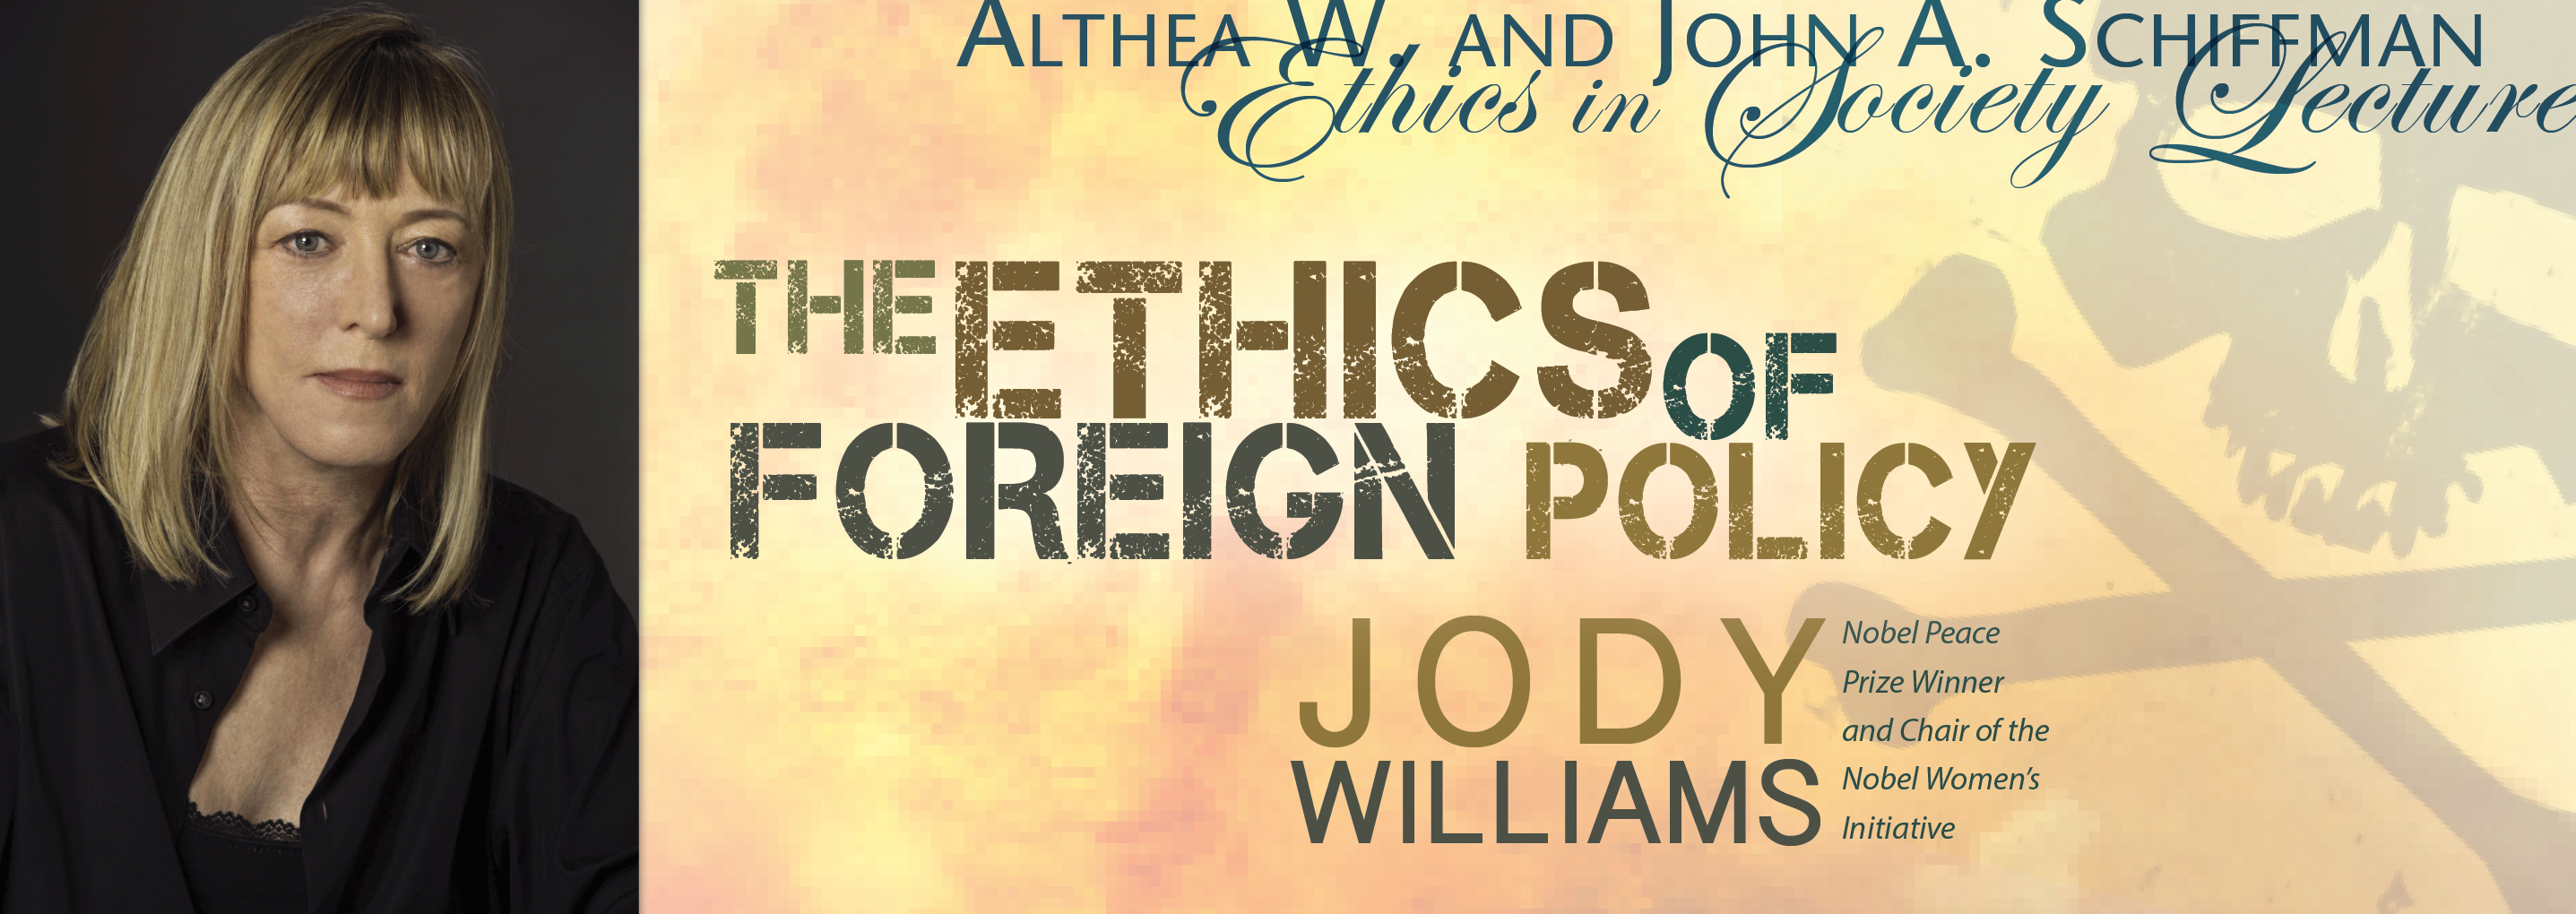 Nobel Prize winner to give Schiffman Ethics lecture March 8